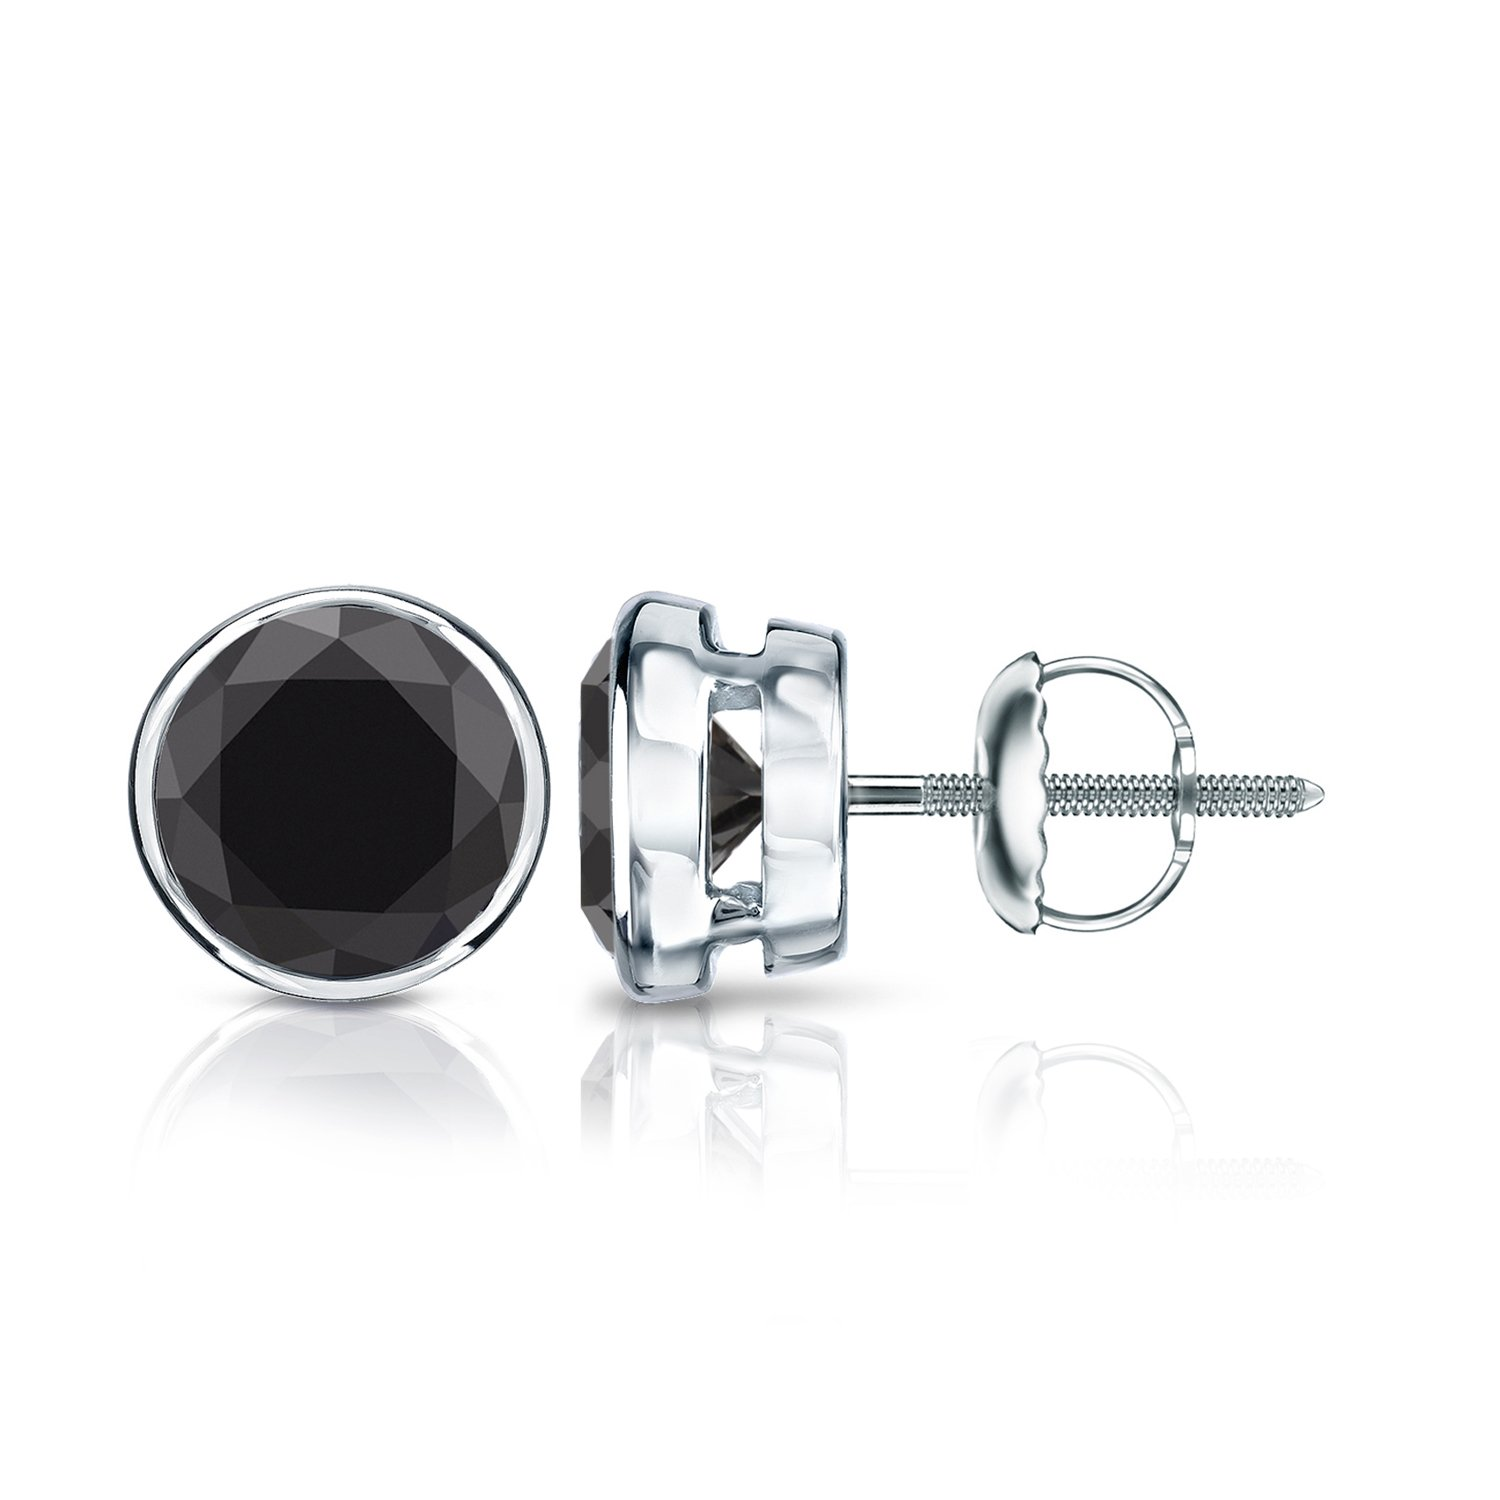 14k White Gold Round Black Diamond Men's Bezel Stud Earrings (3 ct, Black) Screw-Back by Diamond Wish